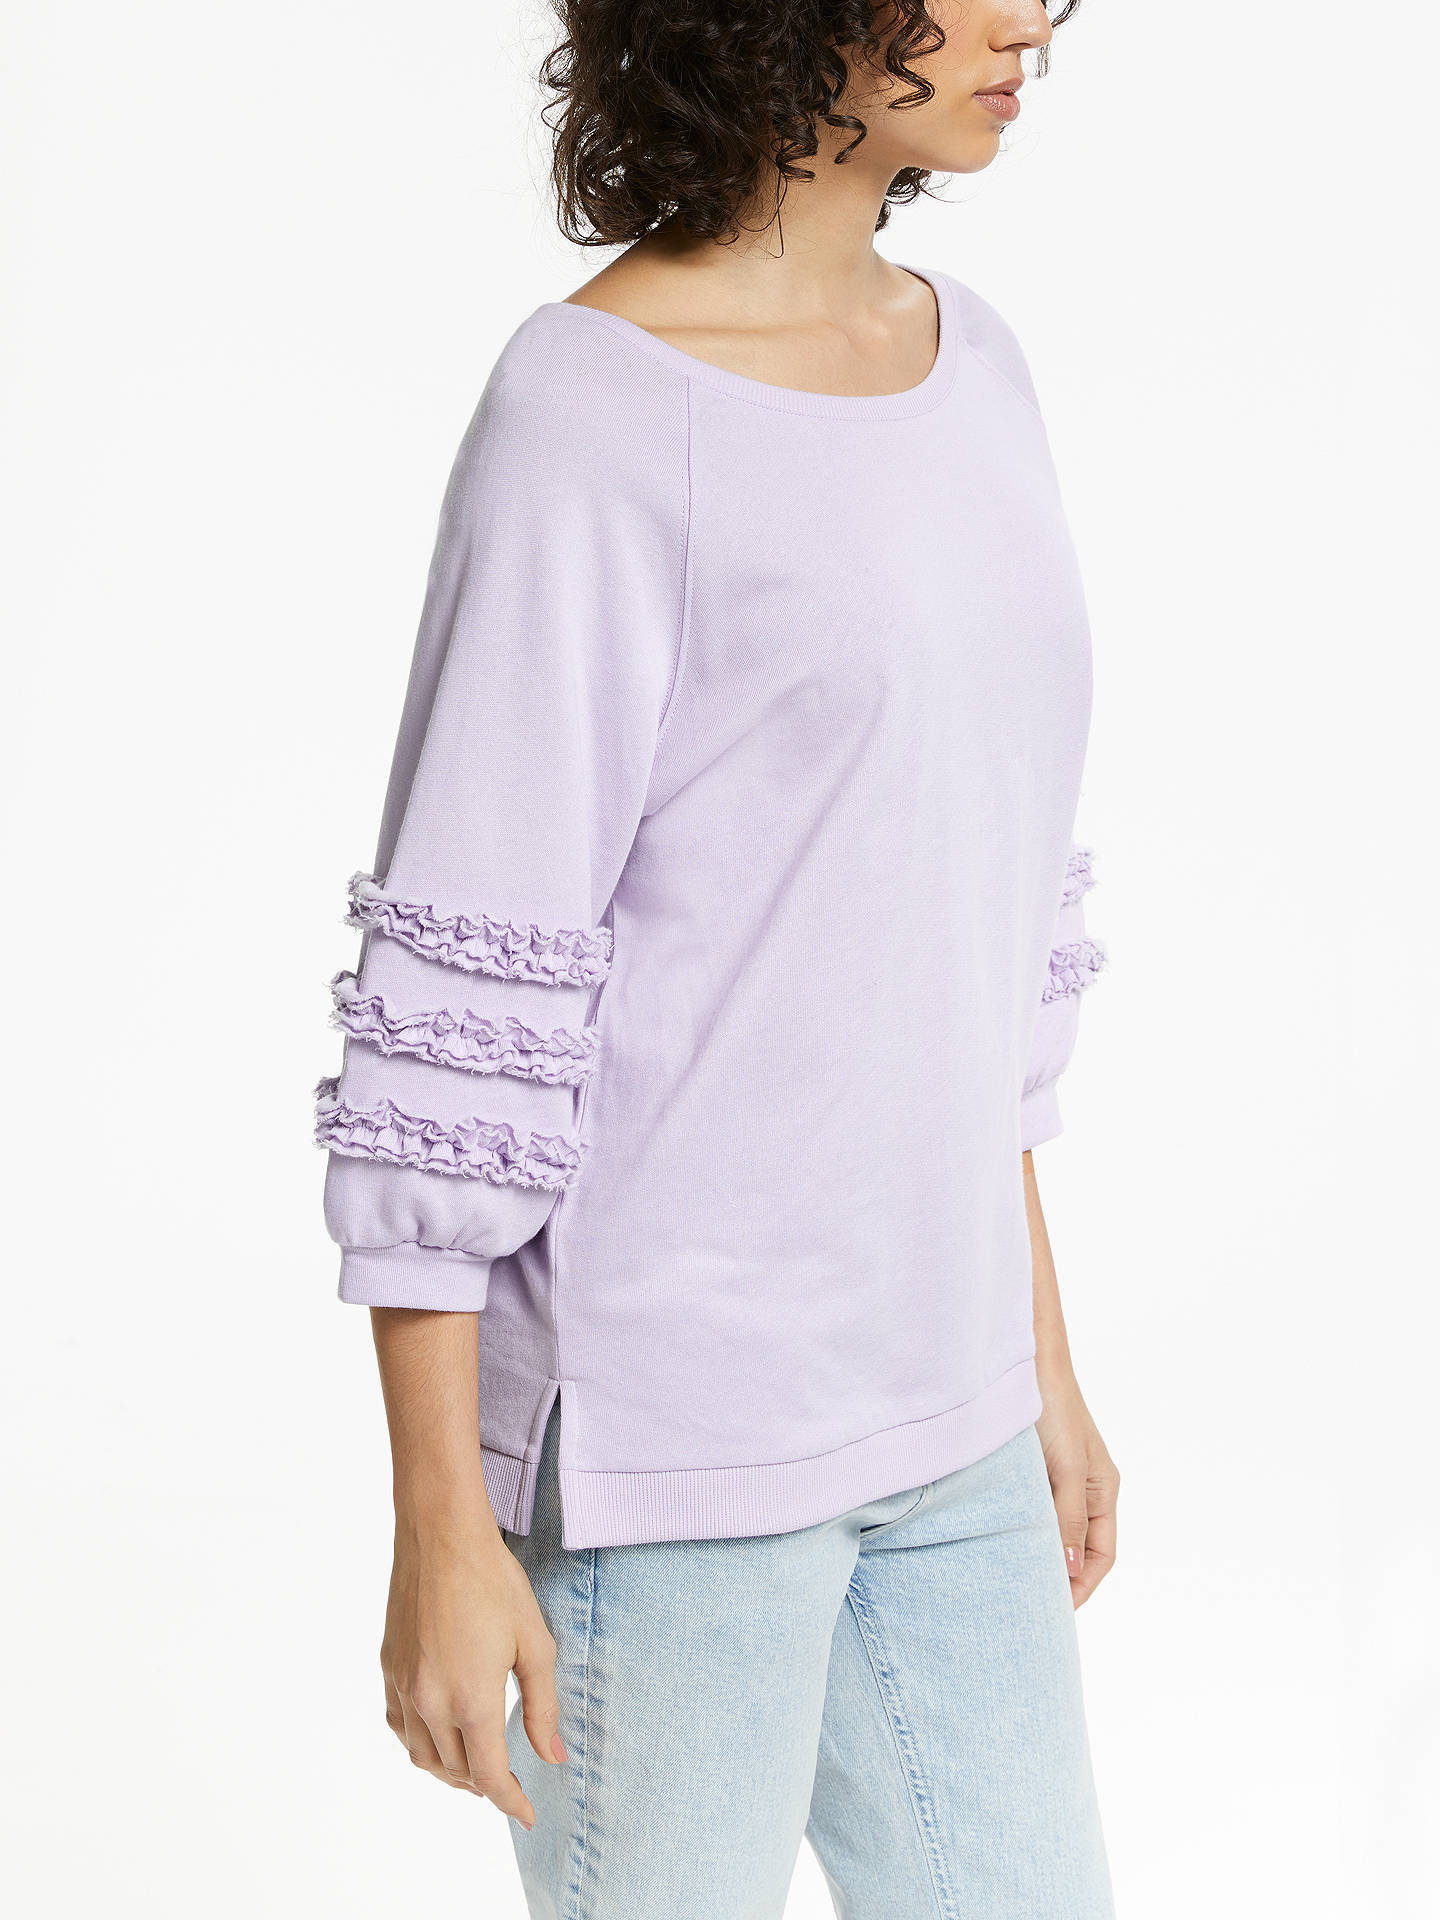 BuyAND/OR Lana Frill Sweat Top, Soft Lilac, 8 Online at johnlewis.com